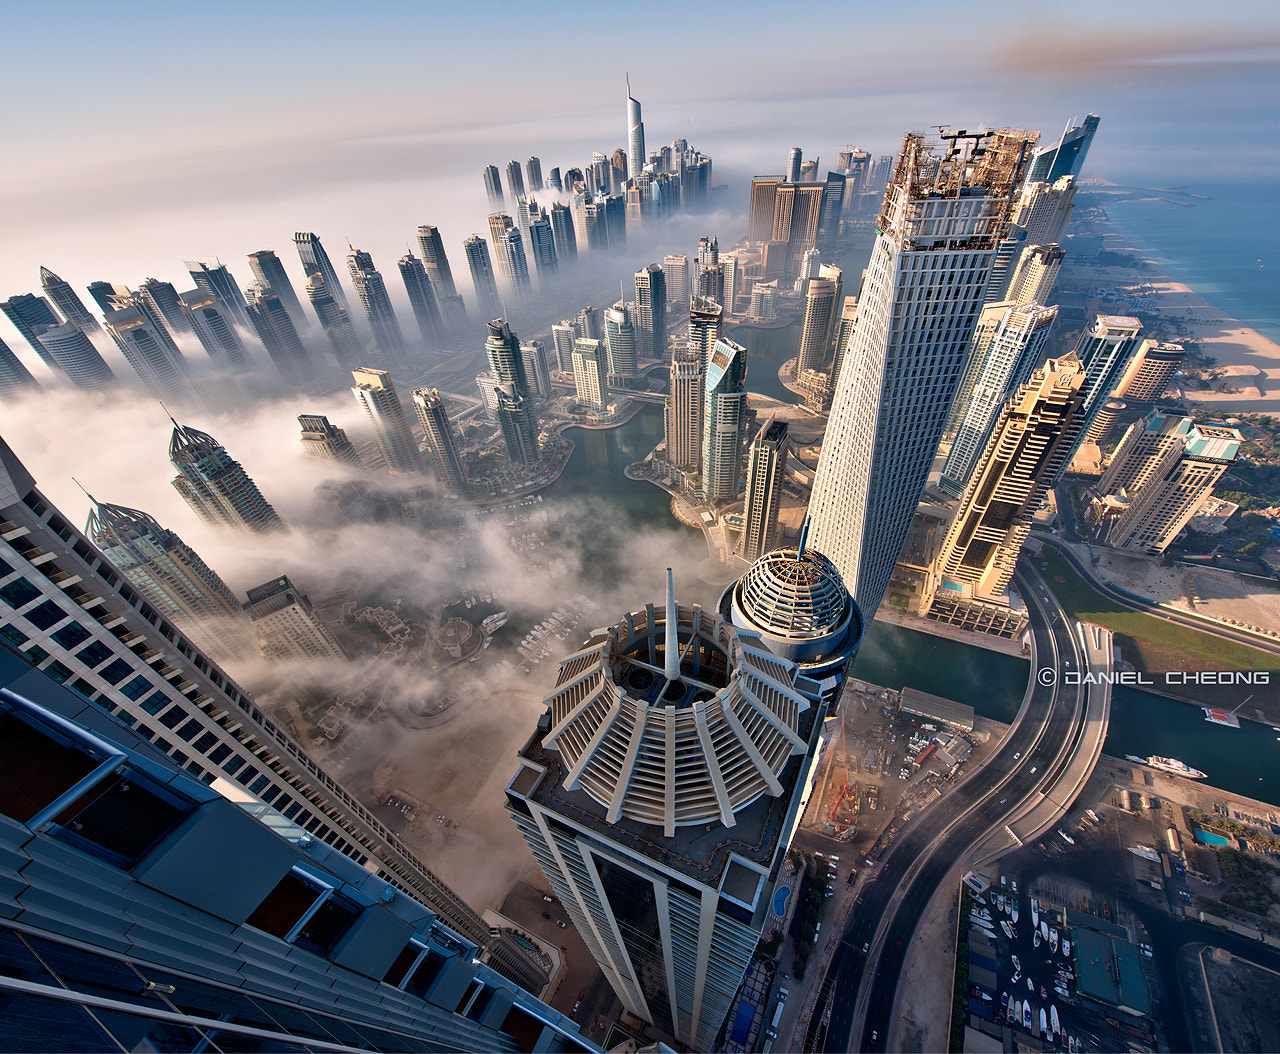 Photograph Vertigo Fog 1 by Daniel Cheong on 500px